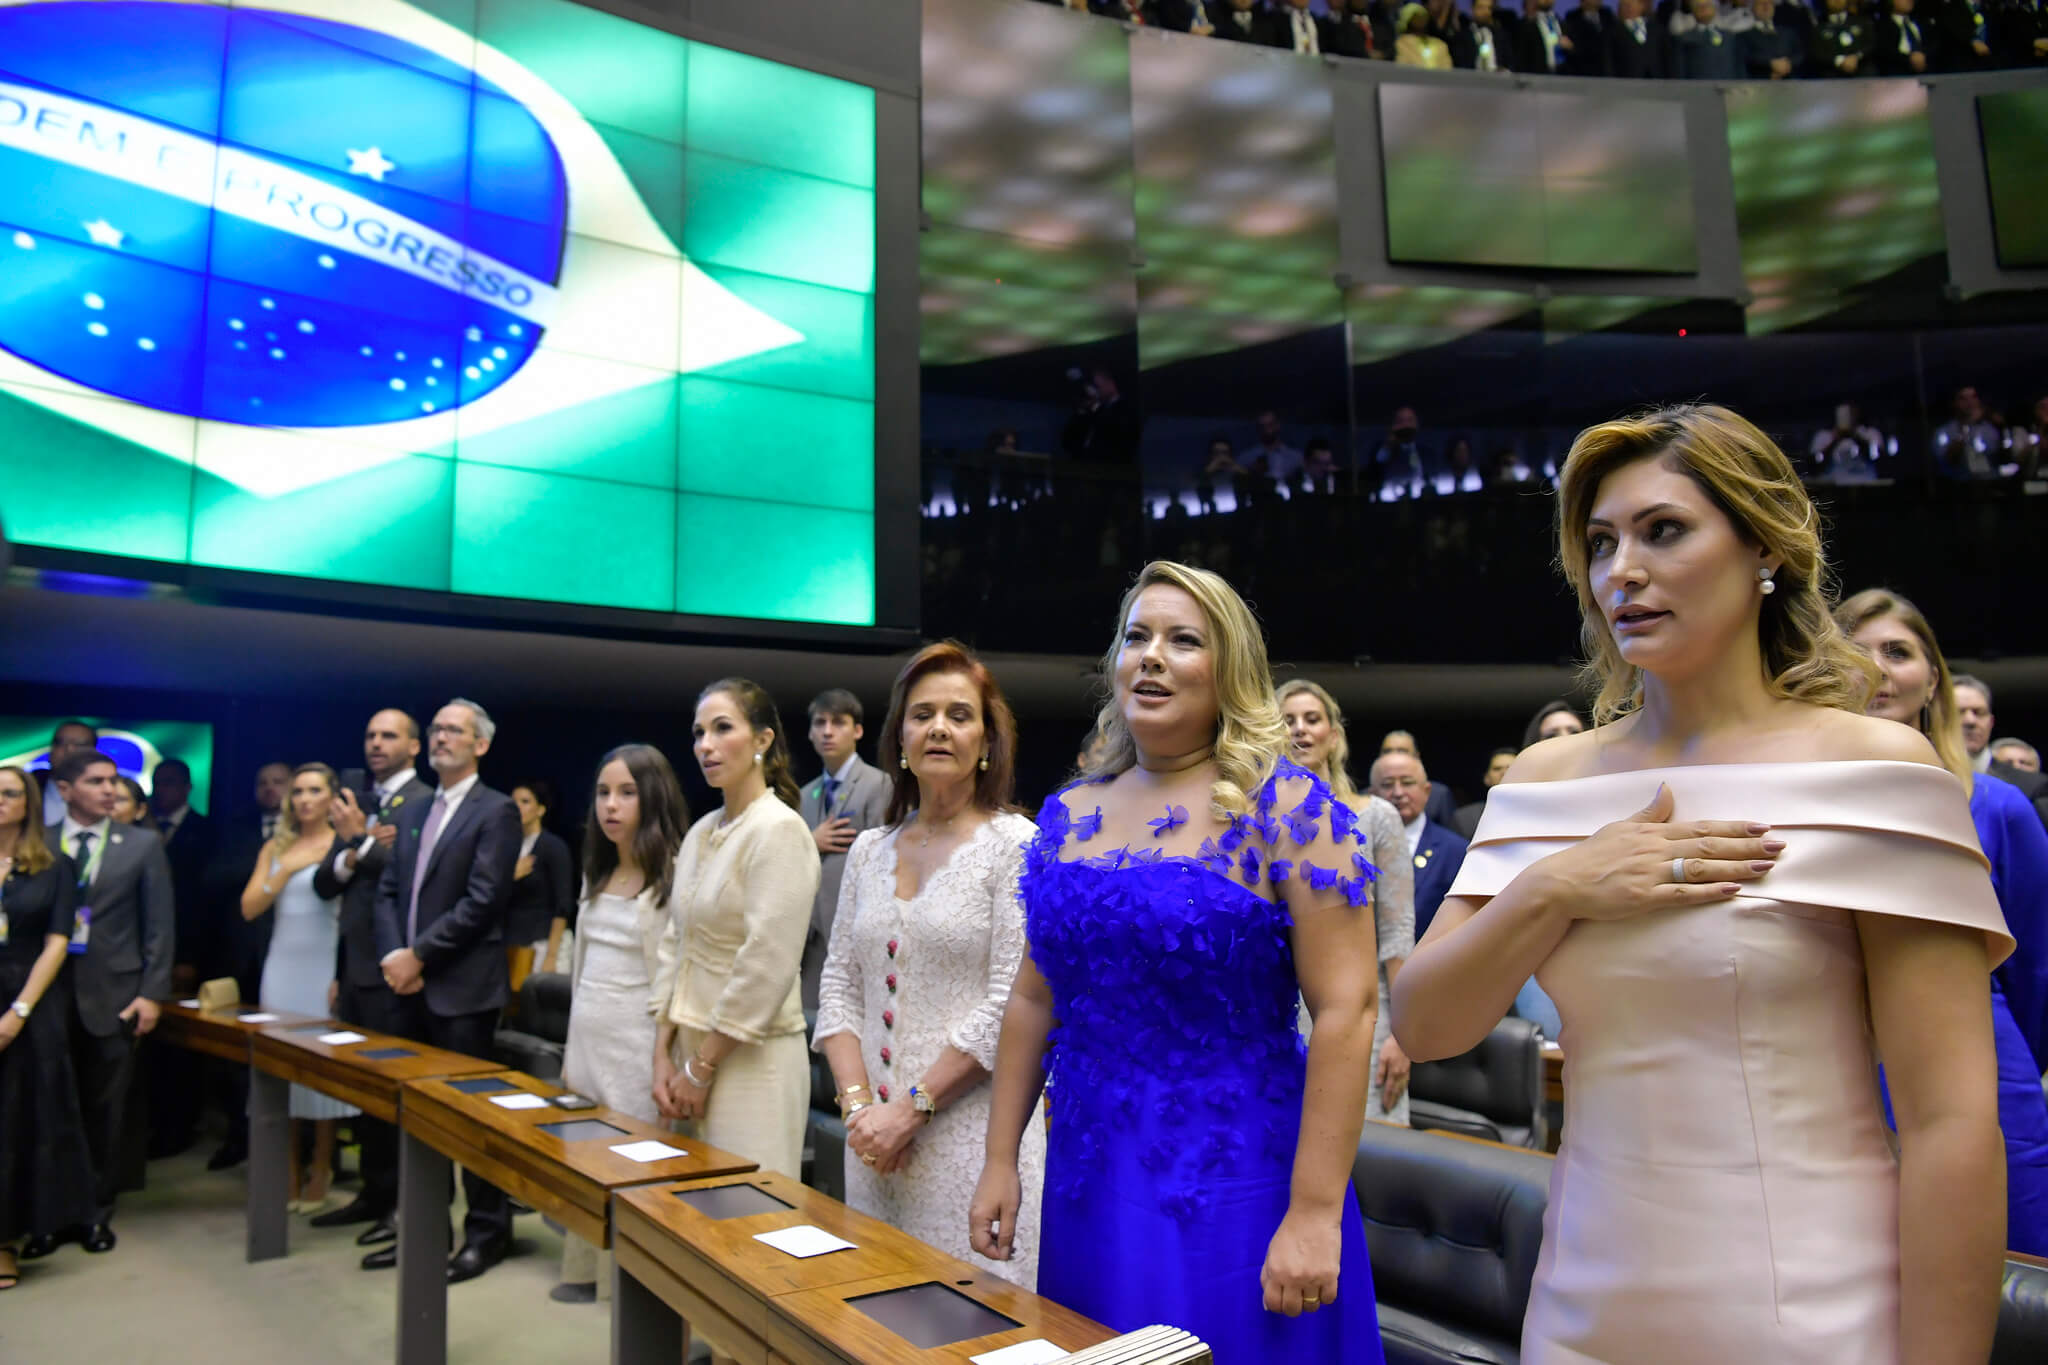 Ceremony in the National Congress during the inauguration of president Bolsonaro with on the right first lady Michelle Bolsonaro - Senado Federal